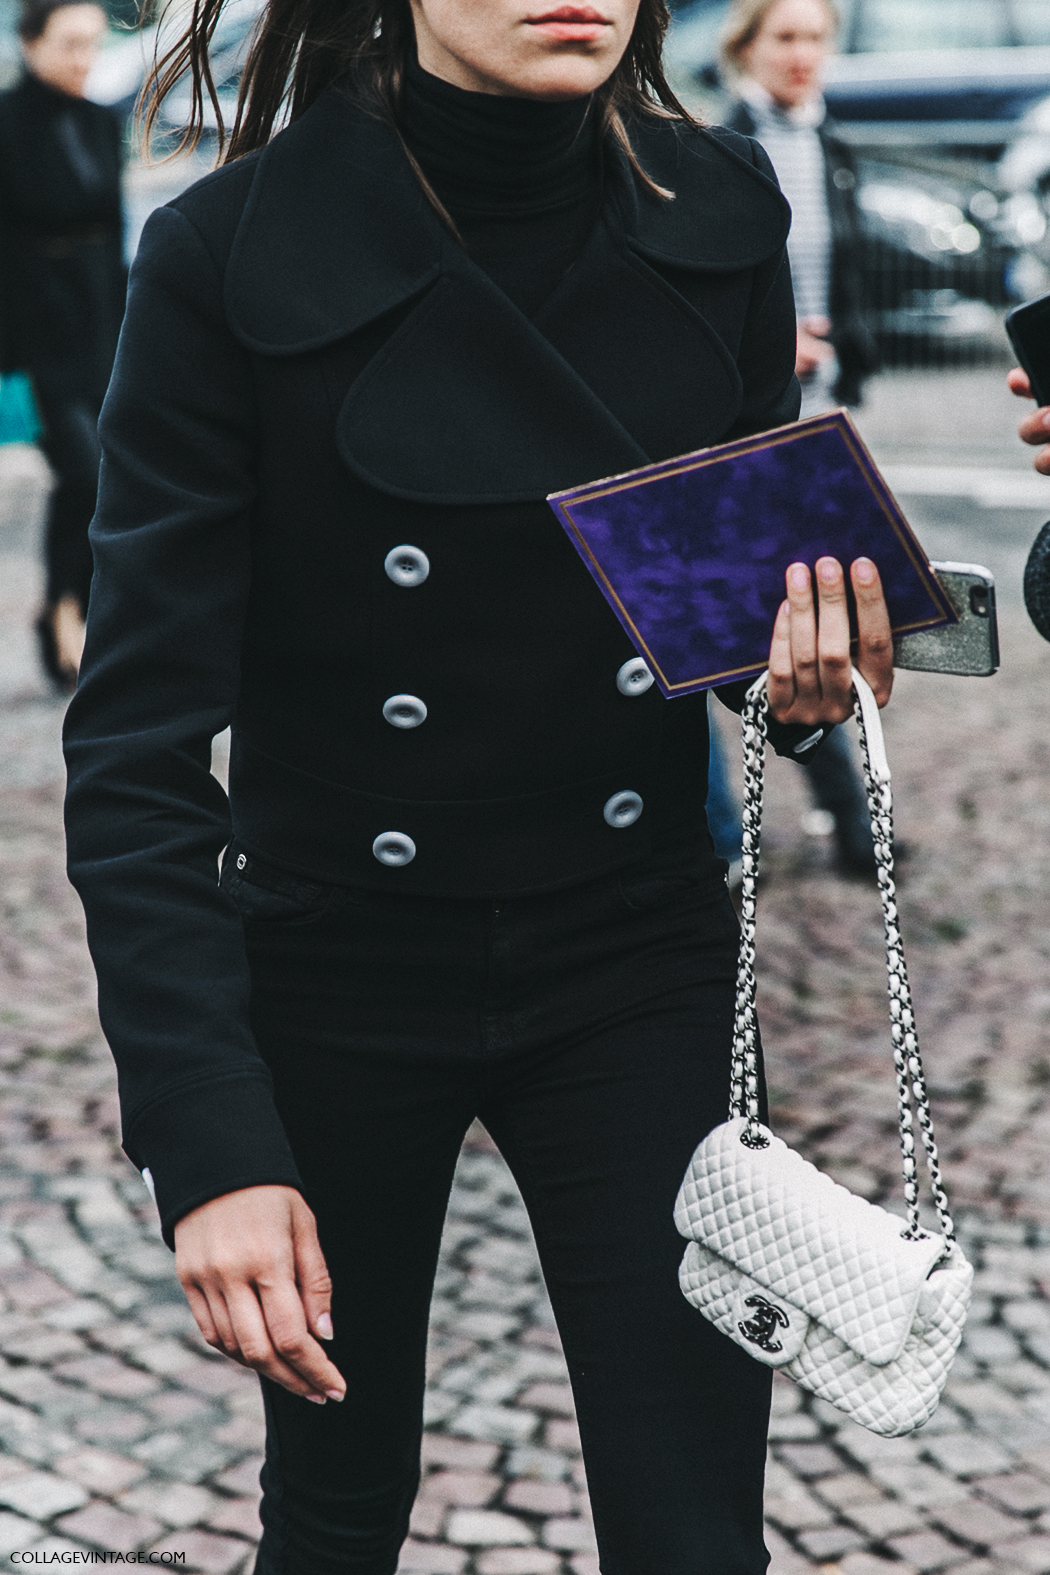 PFW-Paris_Fashion_Week_Fall_2016-Street_Style-Collage_Vintage-Miu_Miu-Julia_Gall-